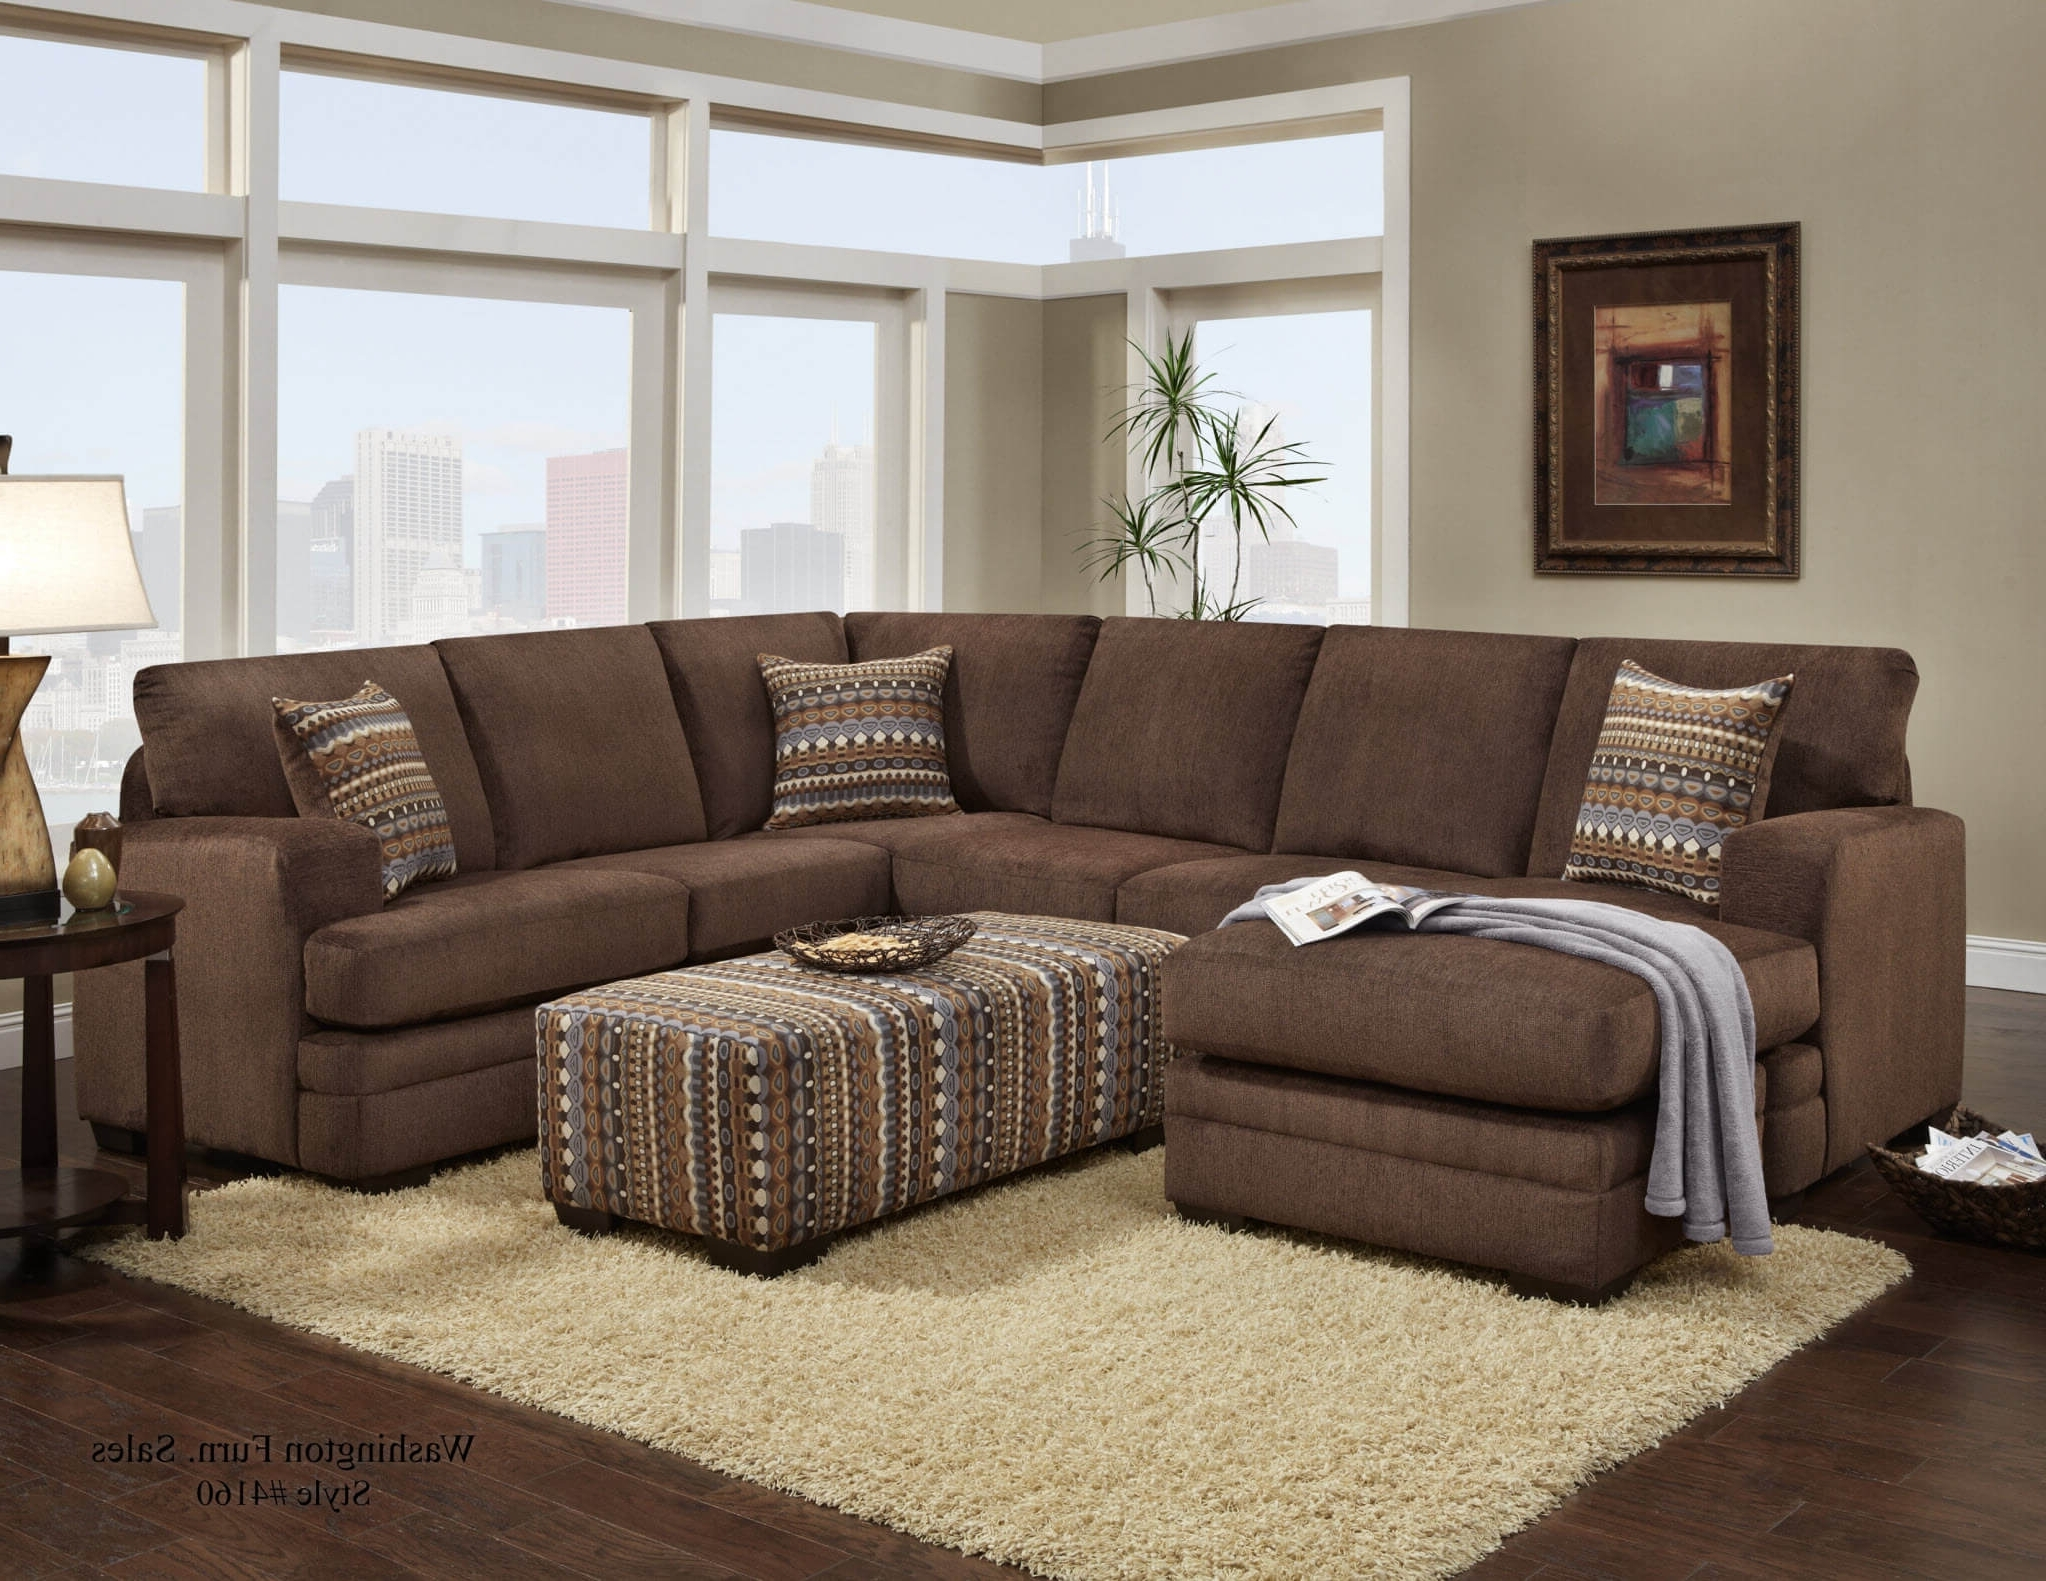 Chocolate Sectional Sofas For Famous Hillel Chocolate Sectional (View 2 of 20)